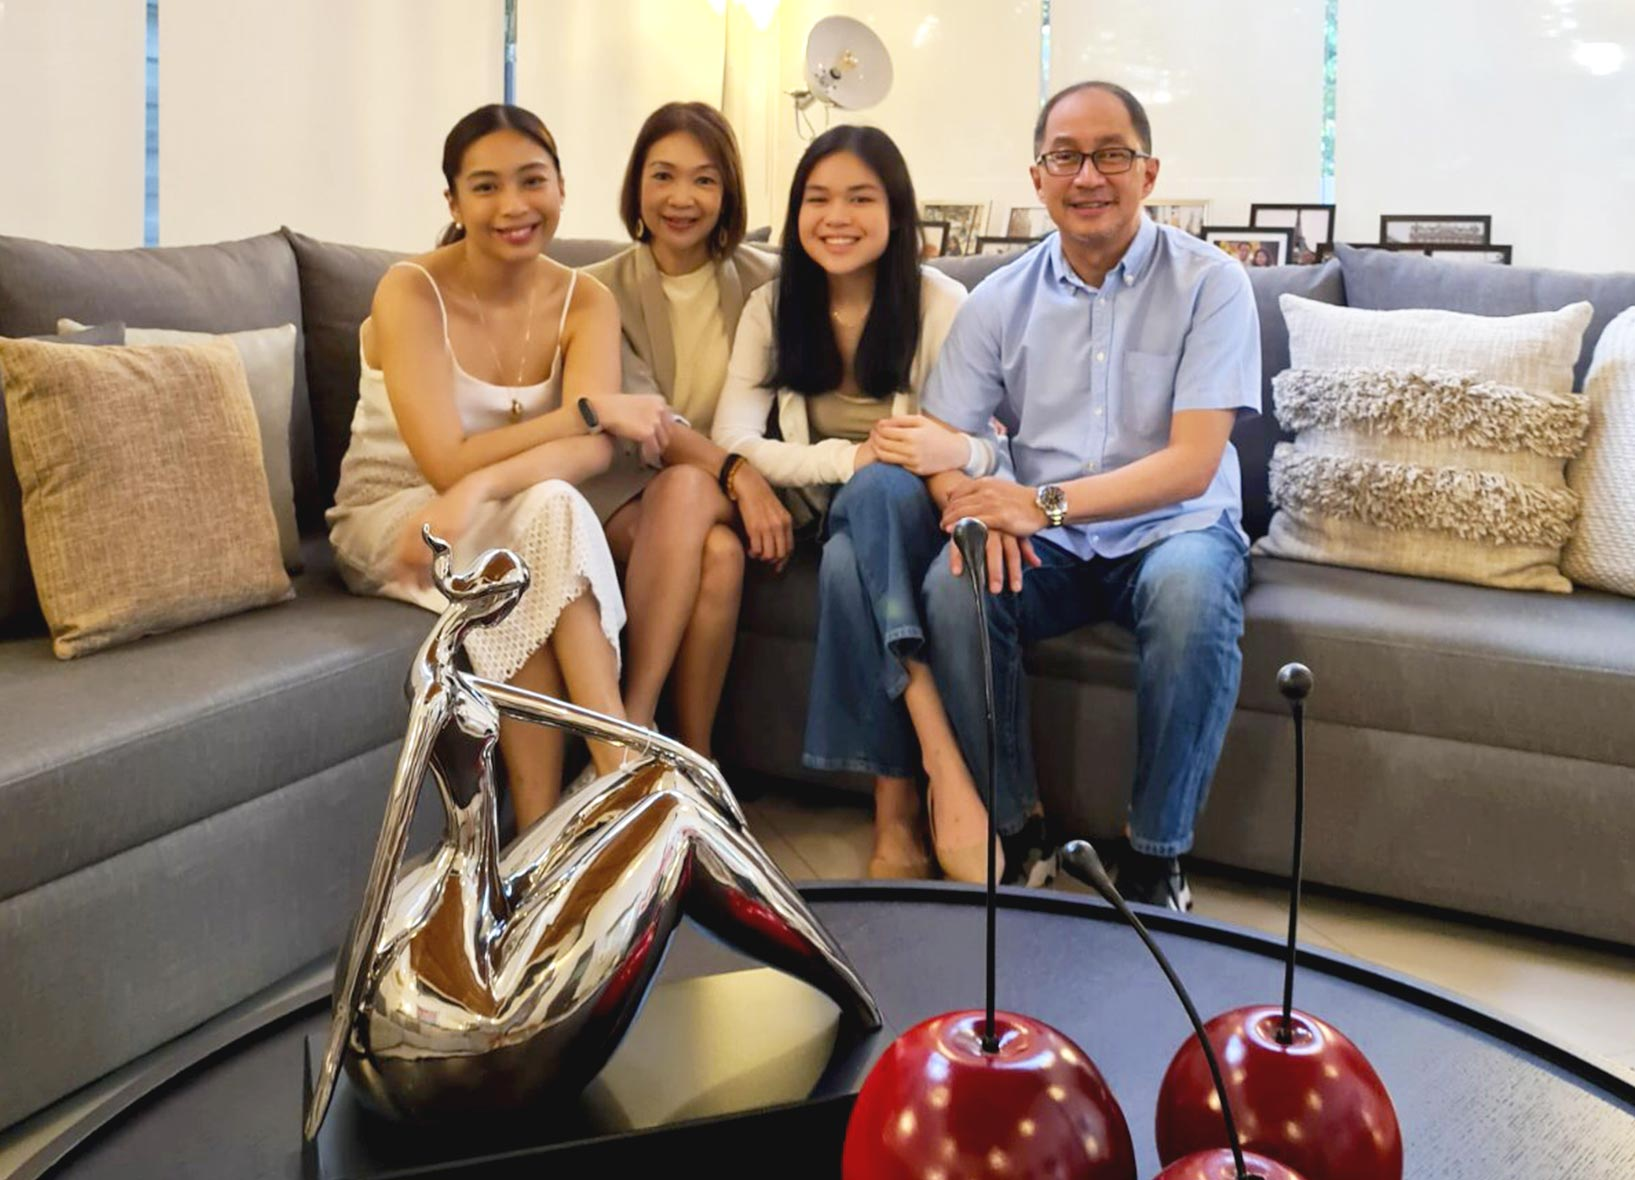 01-Mother_and_father_with_their_two_daughters_sitting_comfortably_on_a_sofa